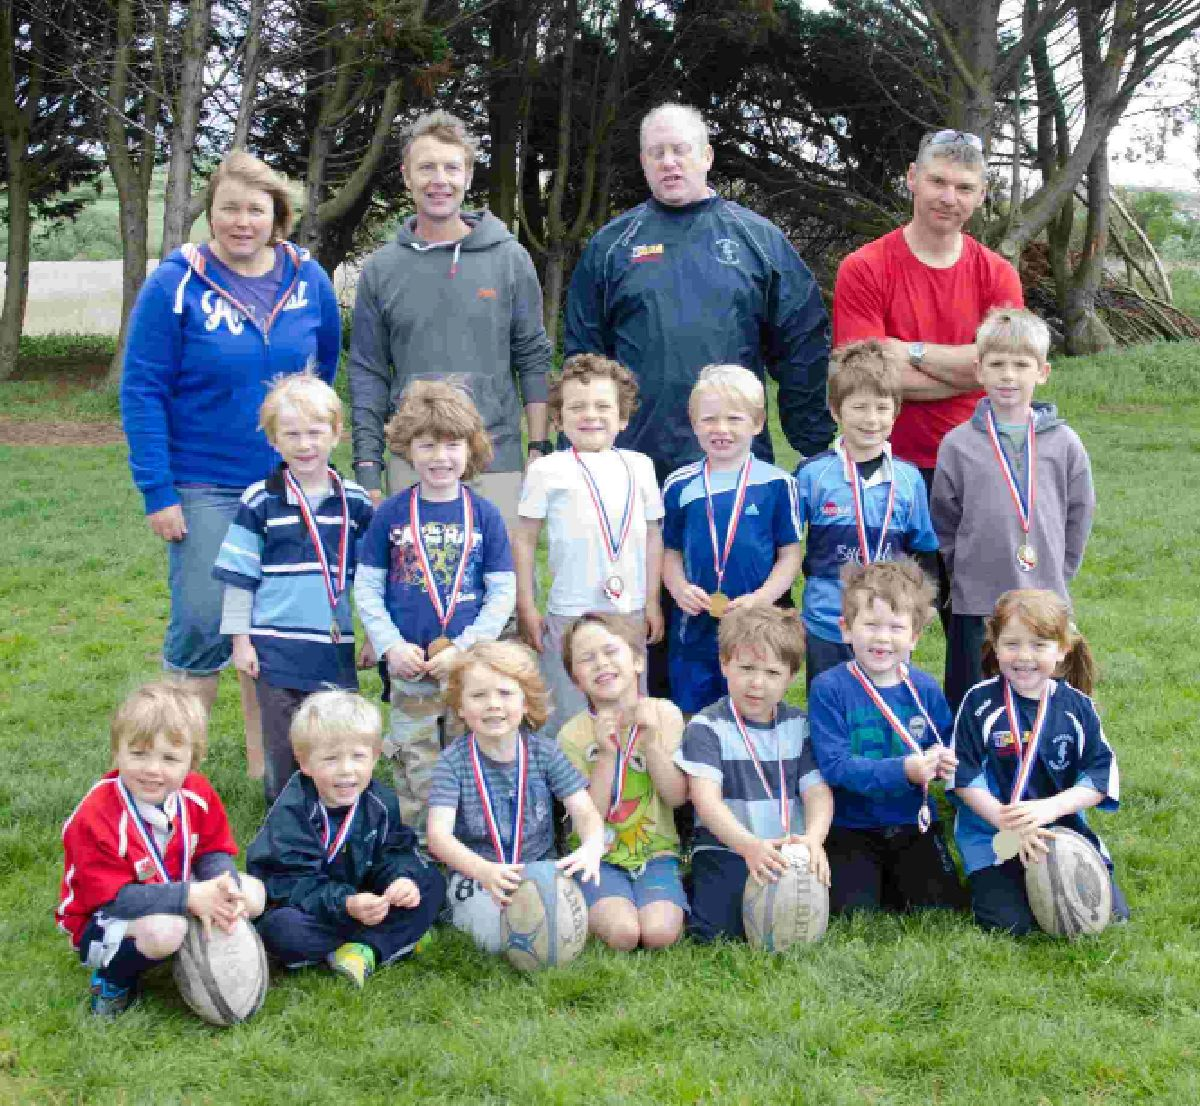 ALL SMILES: Weymouth and Portland Under-6s at the presentation